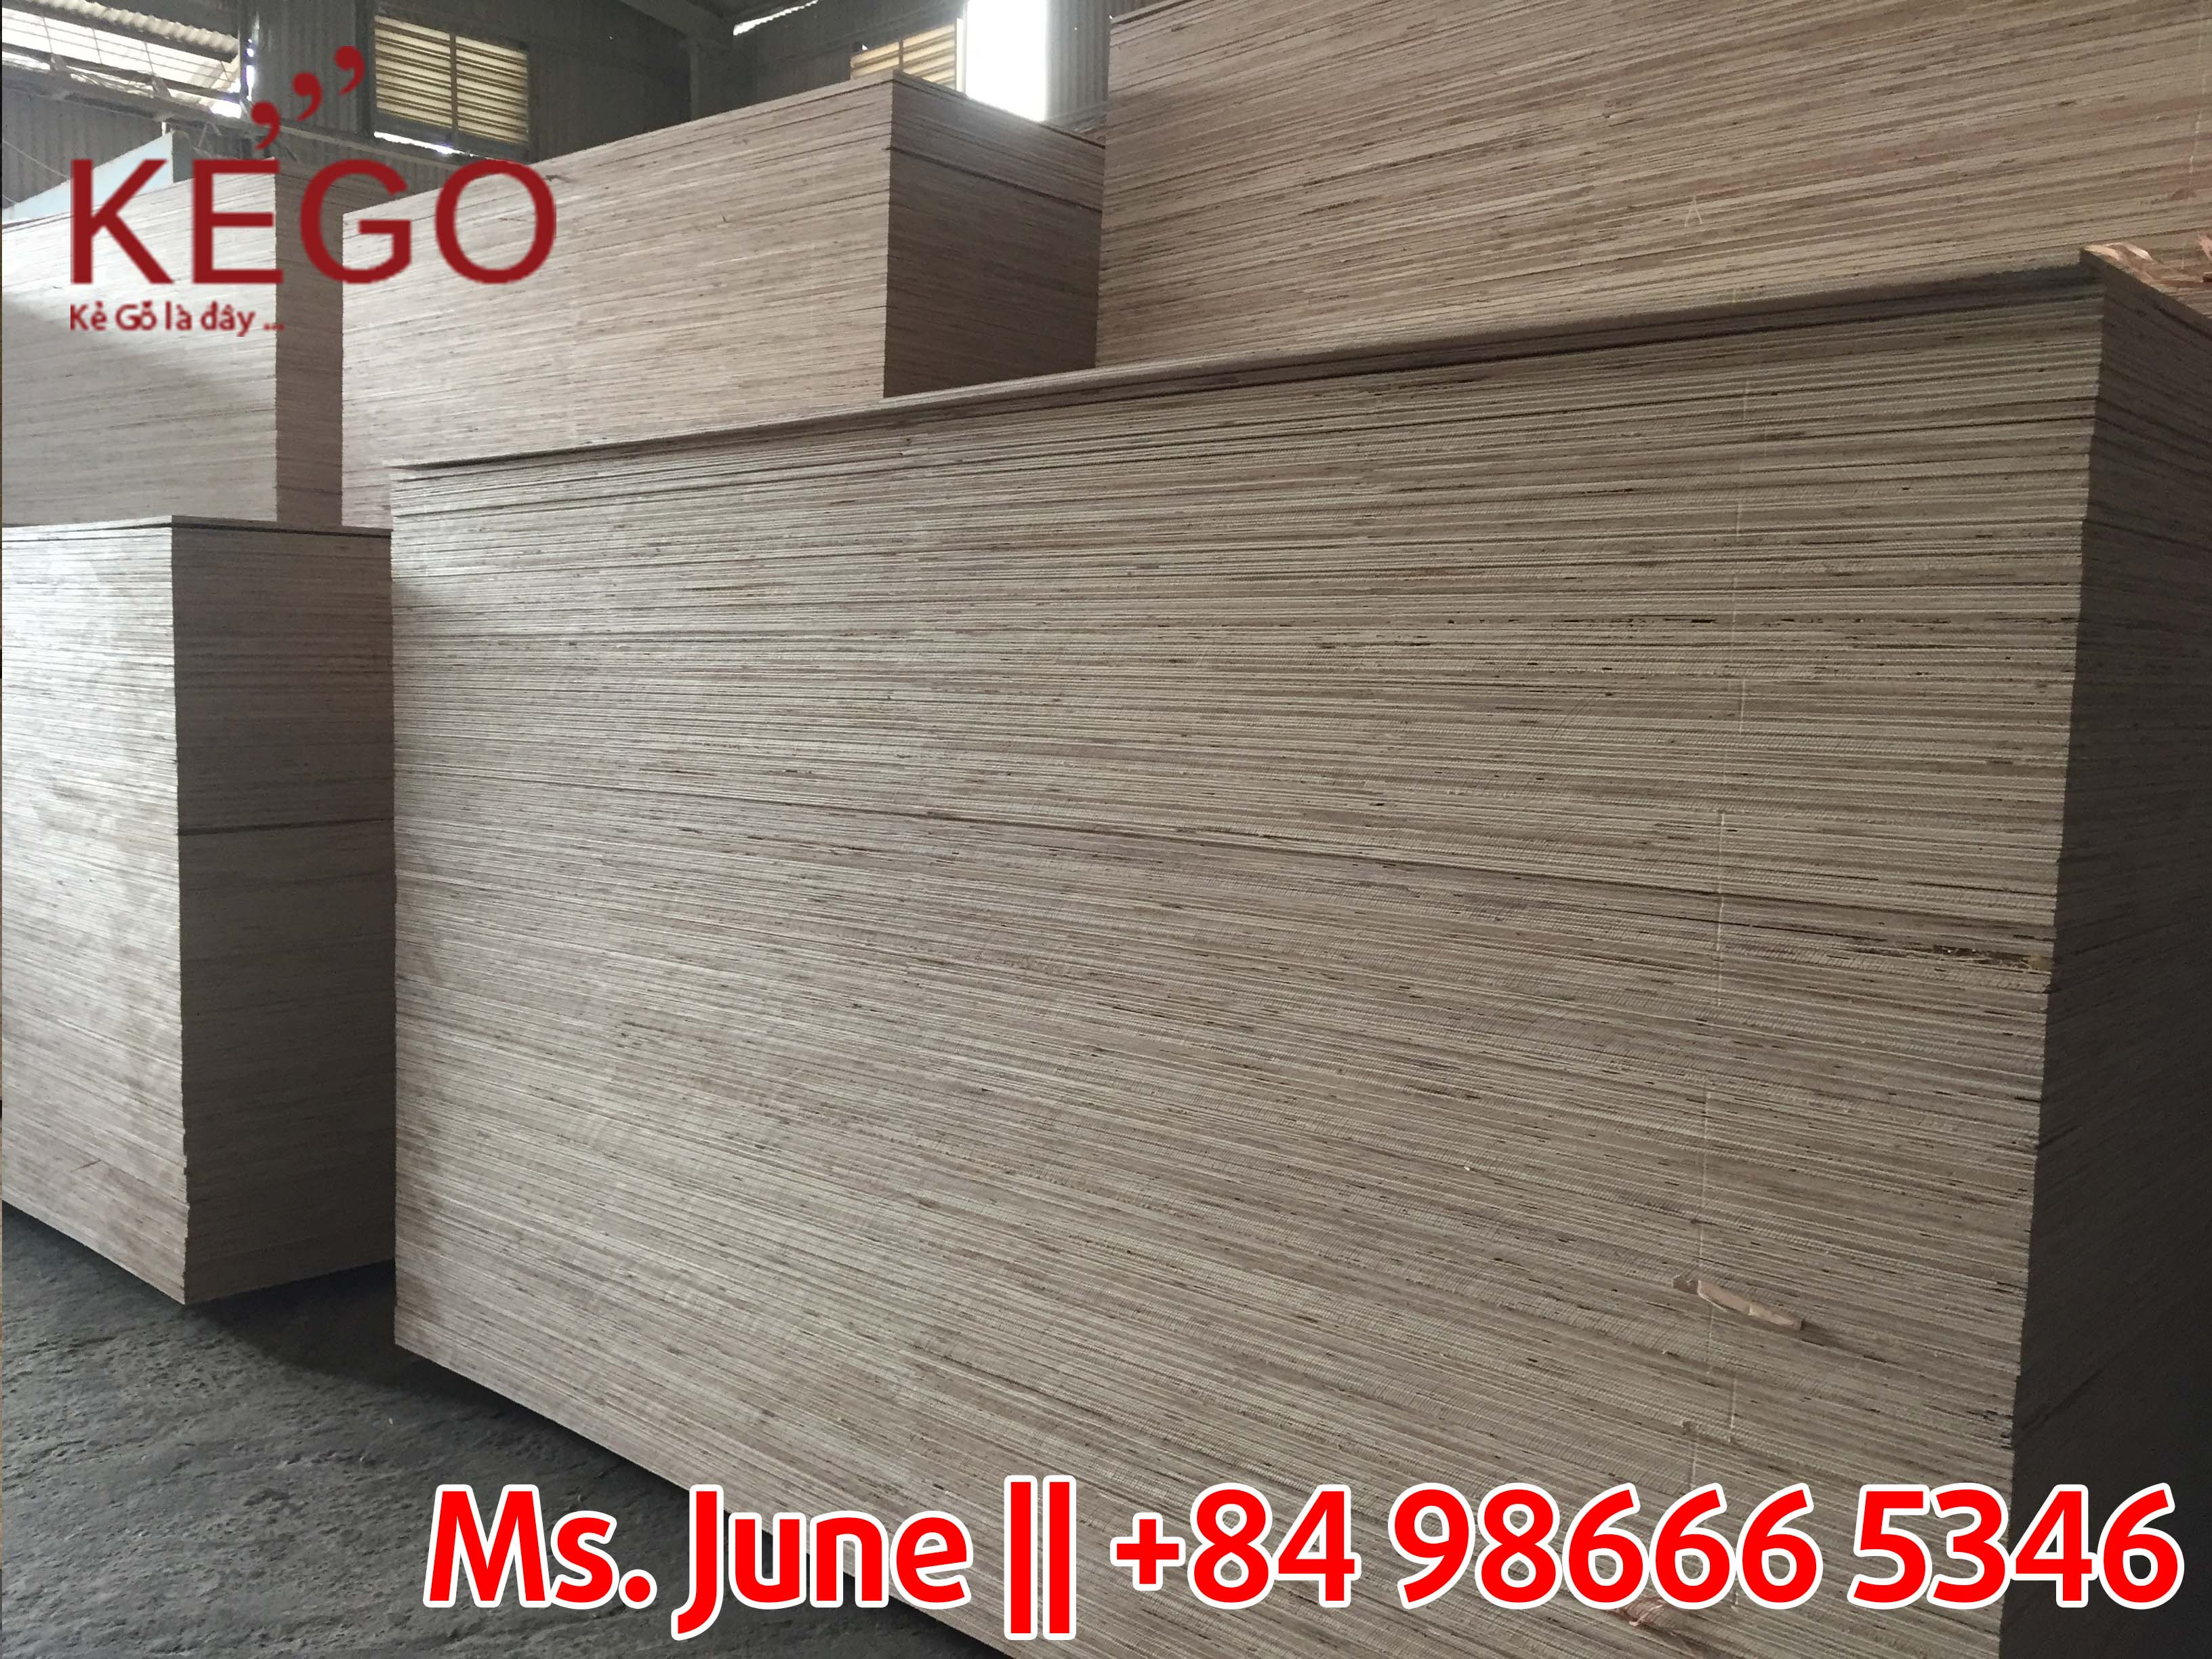 Packing plywood with many thickness